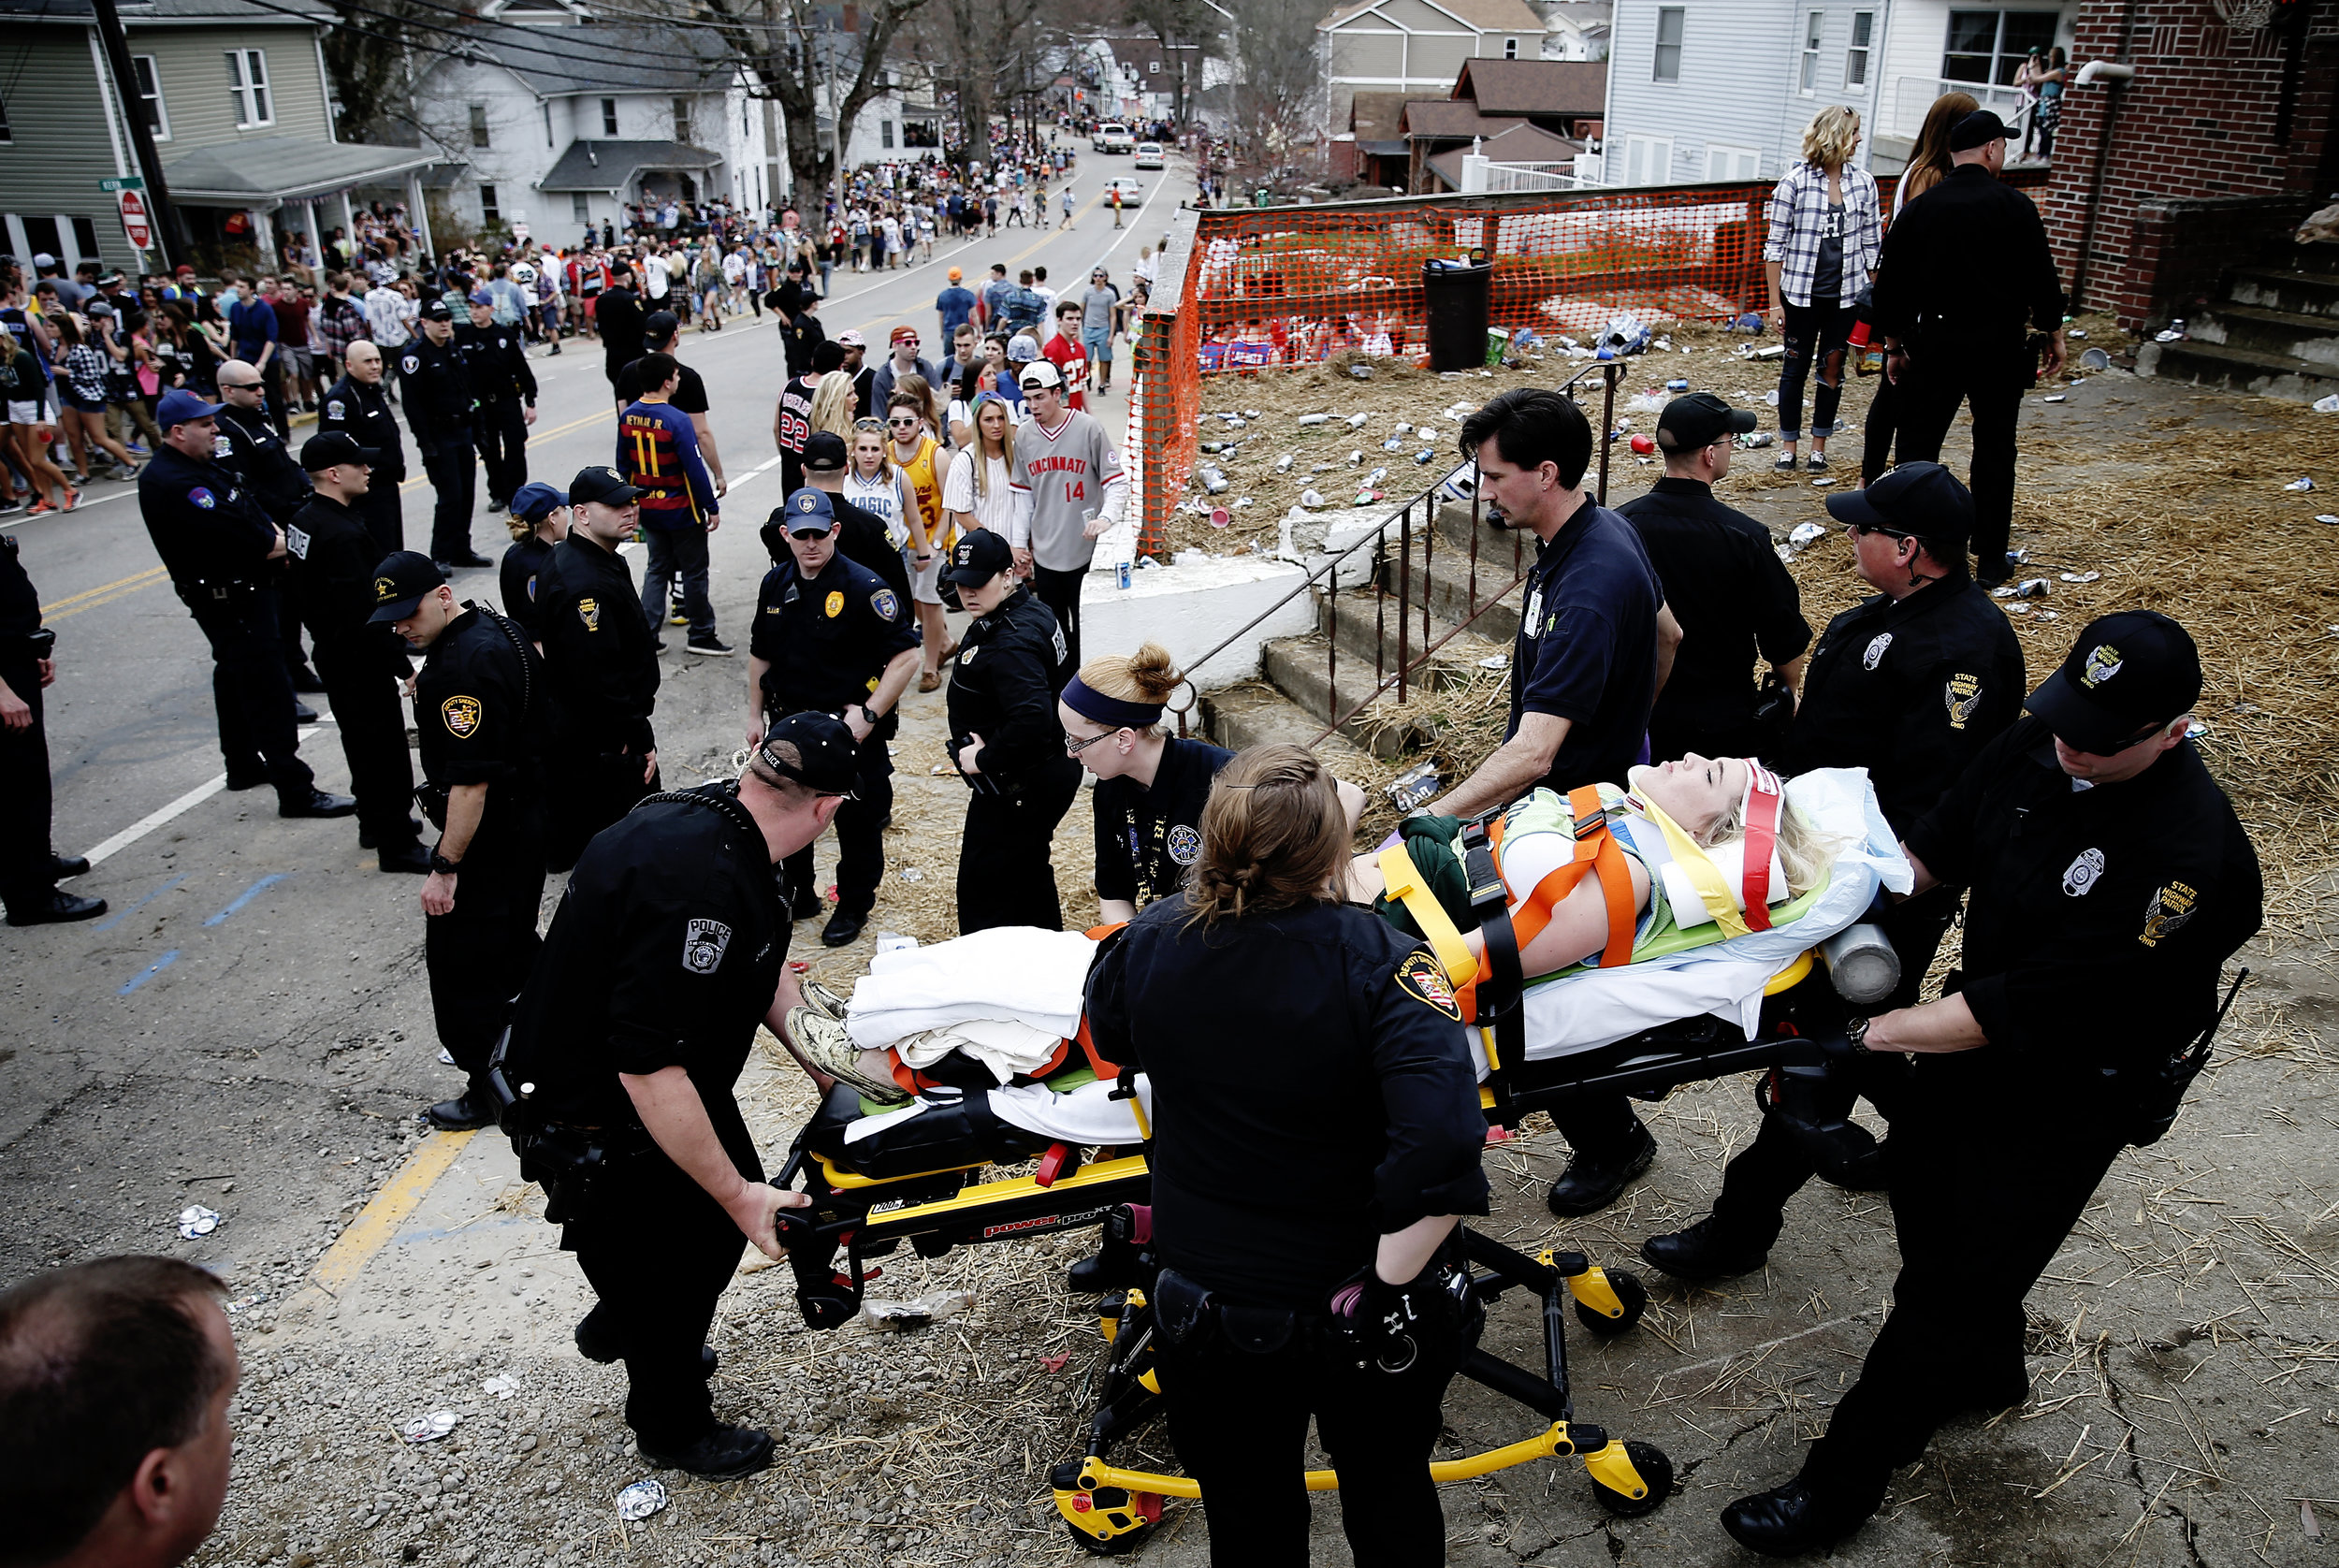 A woman is rescued by emergency responders after falling from a porch during the annual Mill Fest block party in Athens, Ohio.